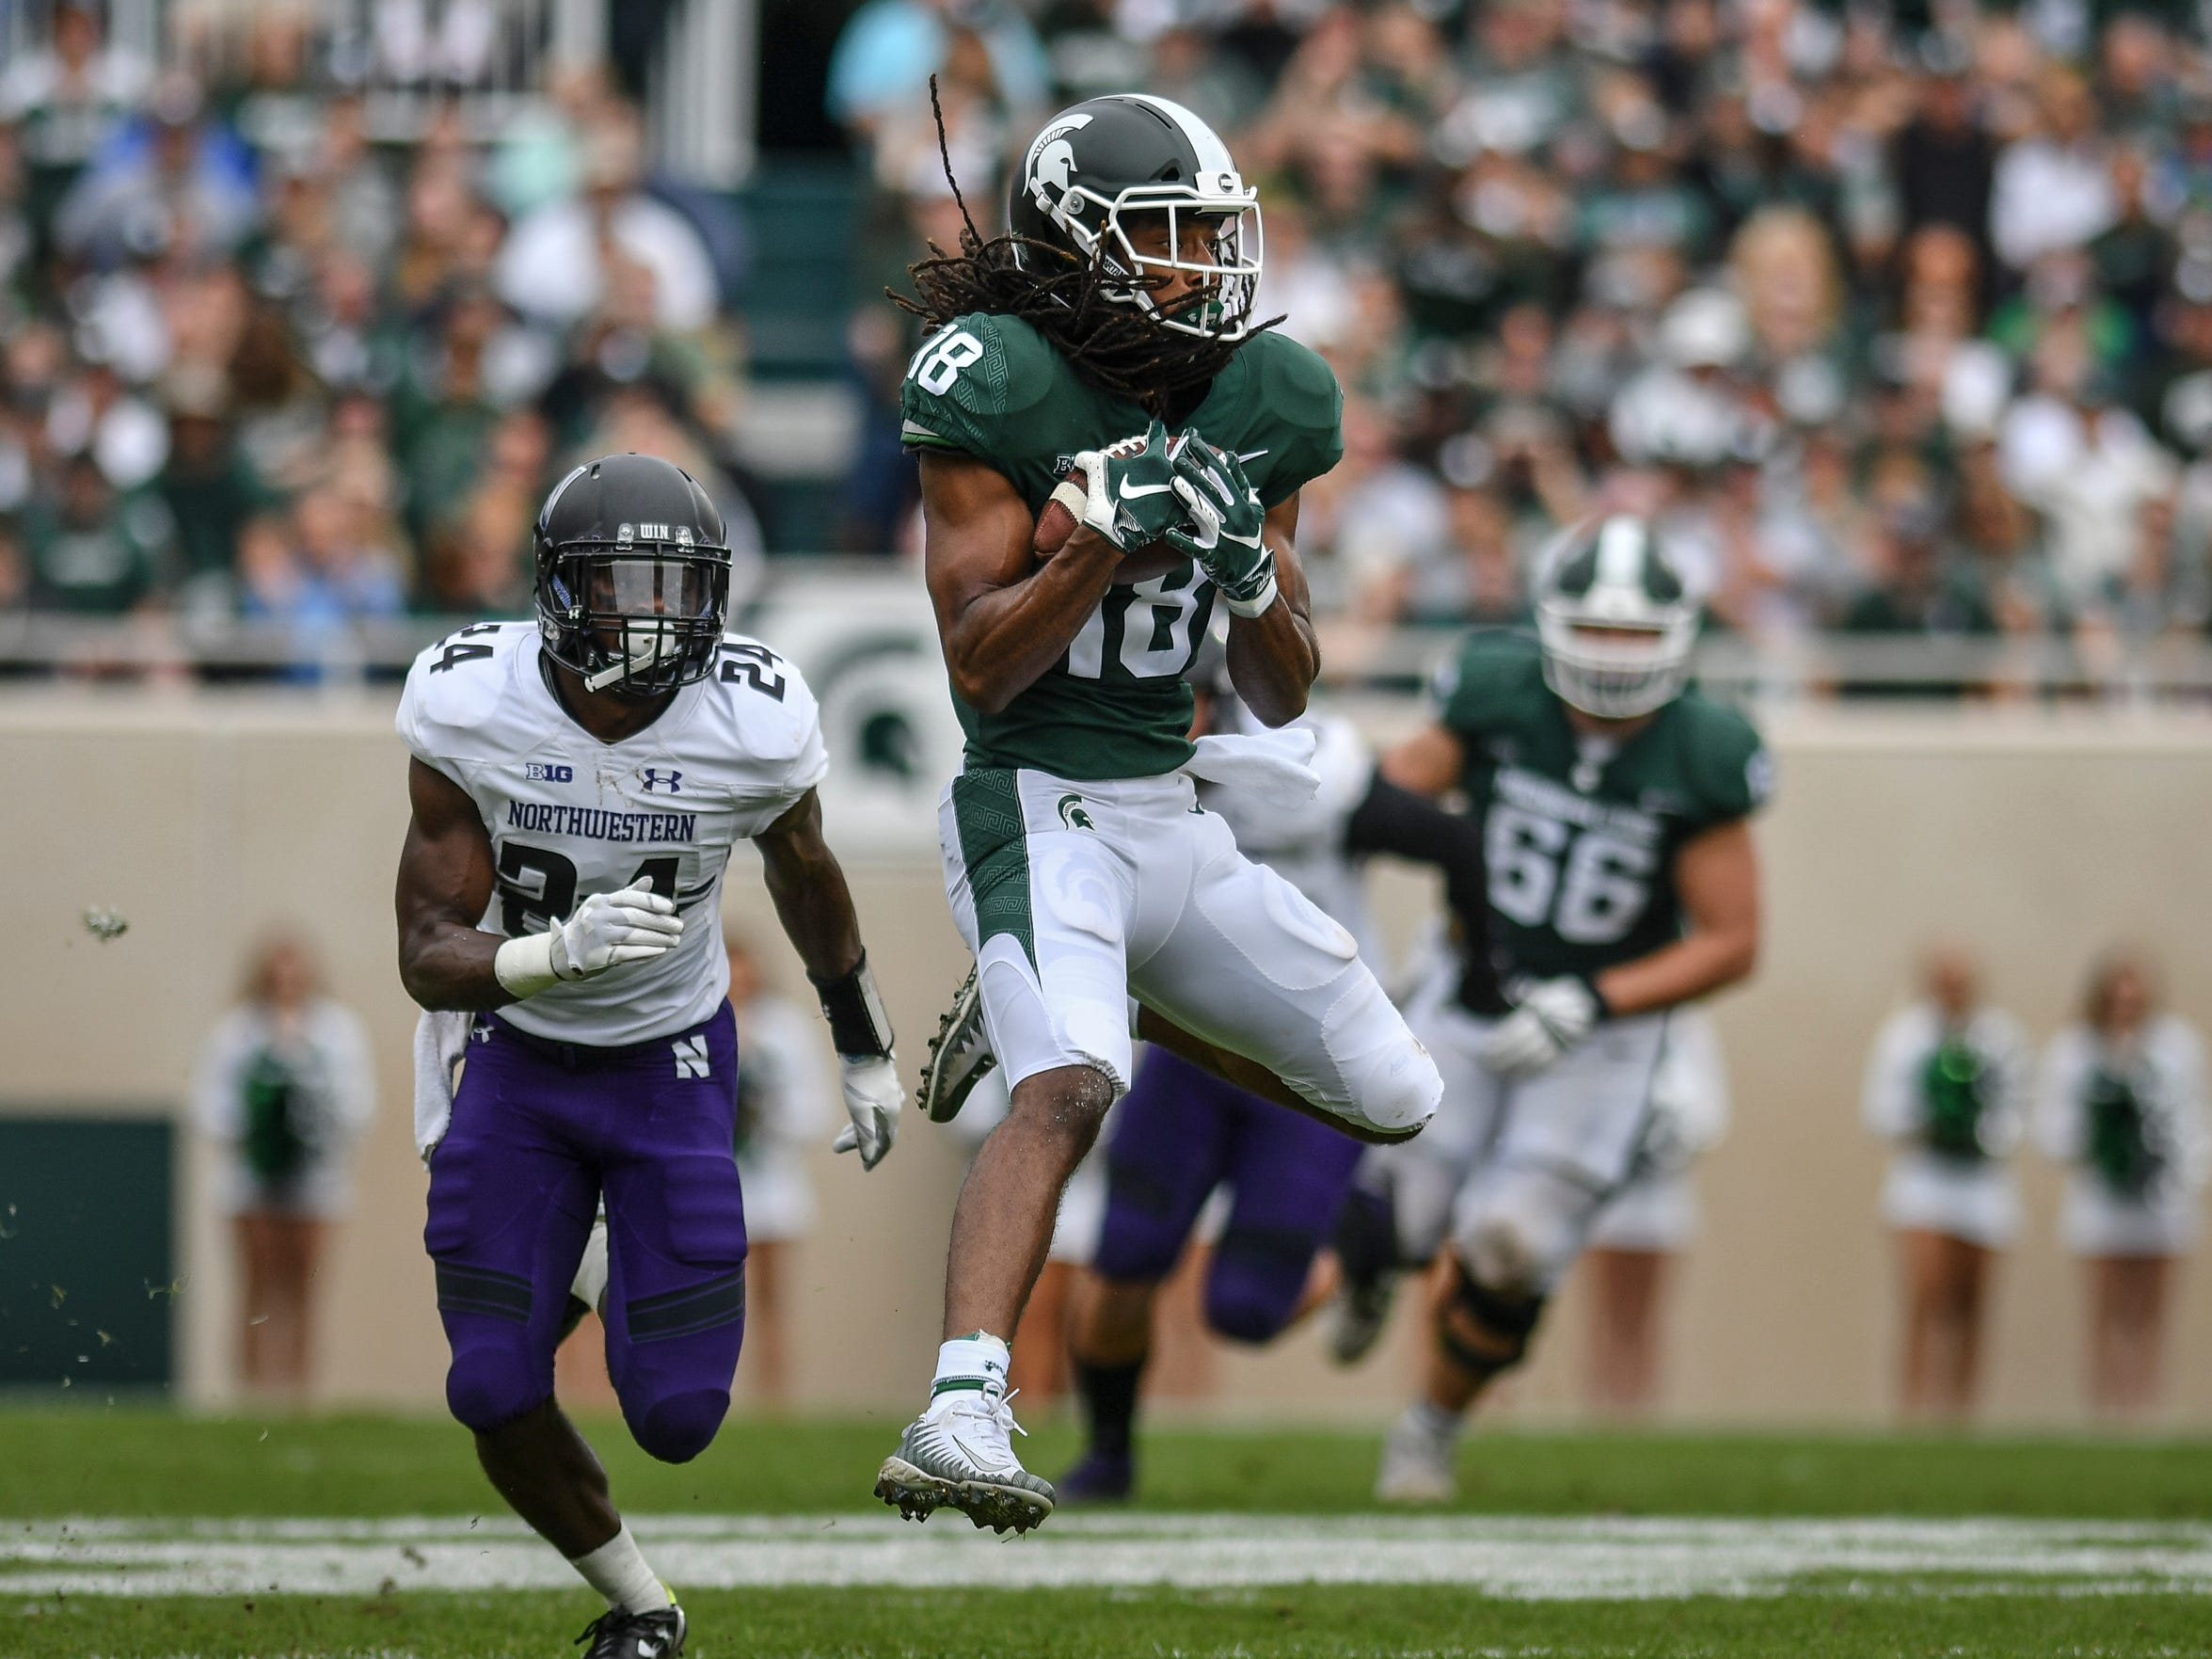 MSU's Felton Davis III gains yardage against Northwestern's Monte Hartage, Sat., Oct 6, 2018.